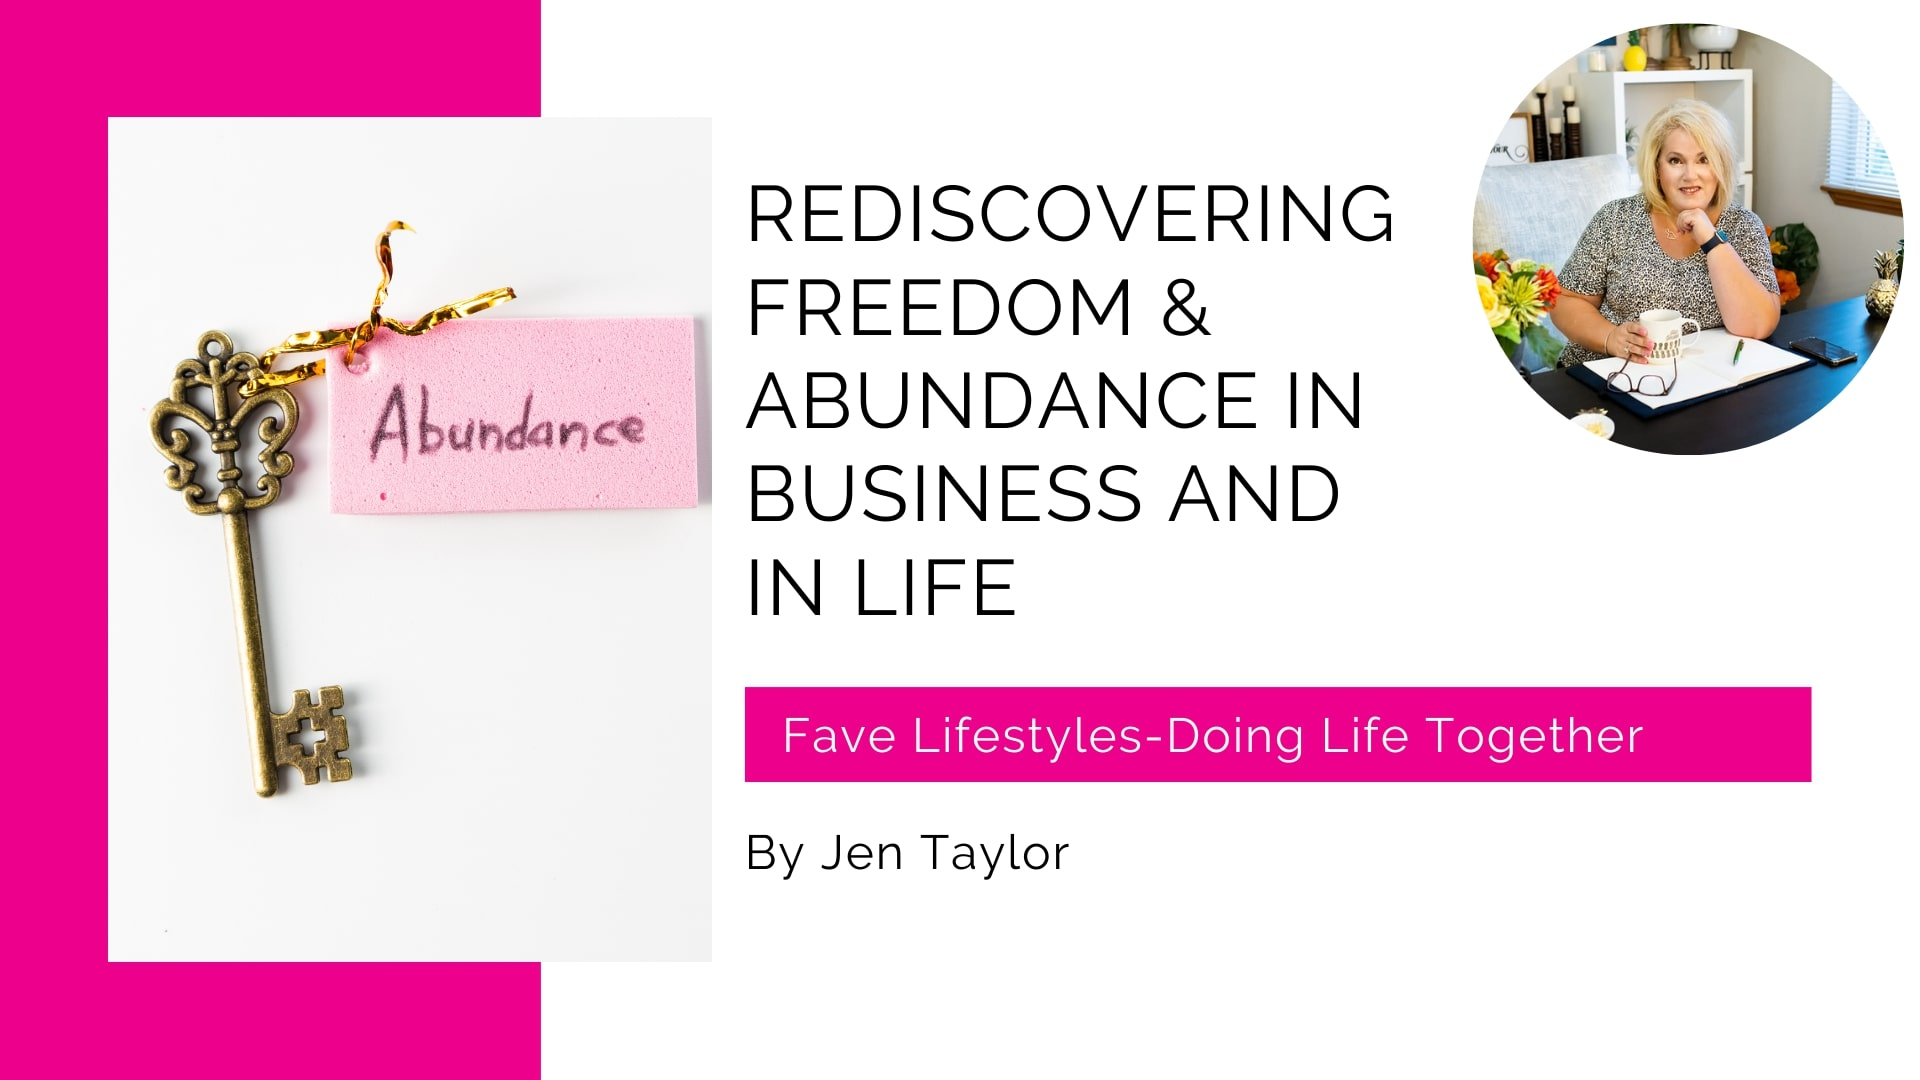 Rediscovering Freedom & Abundance in Business and in Life